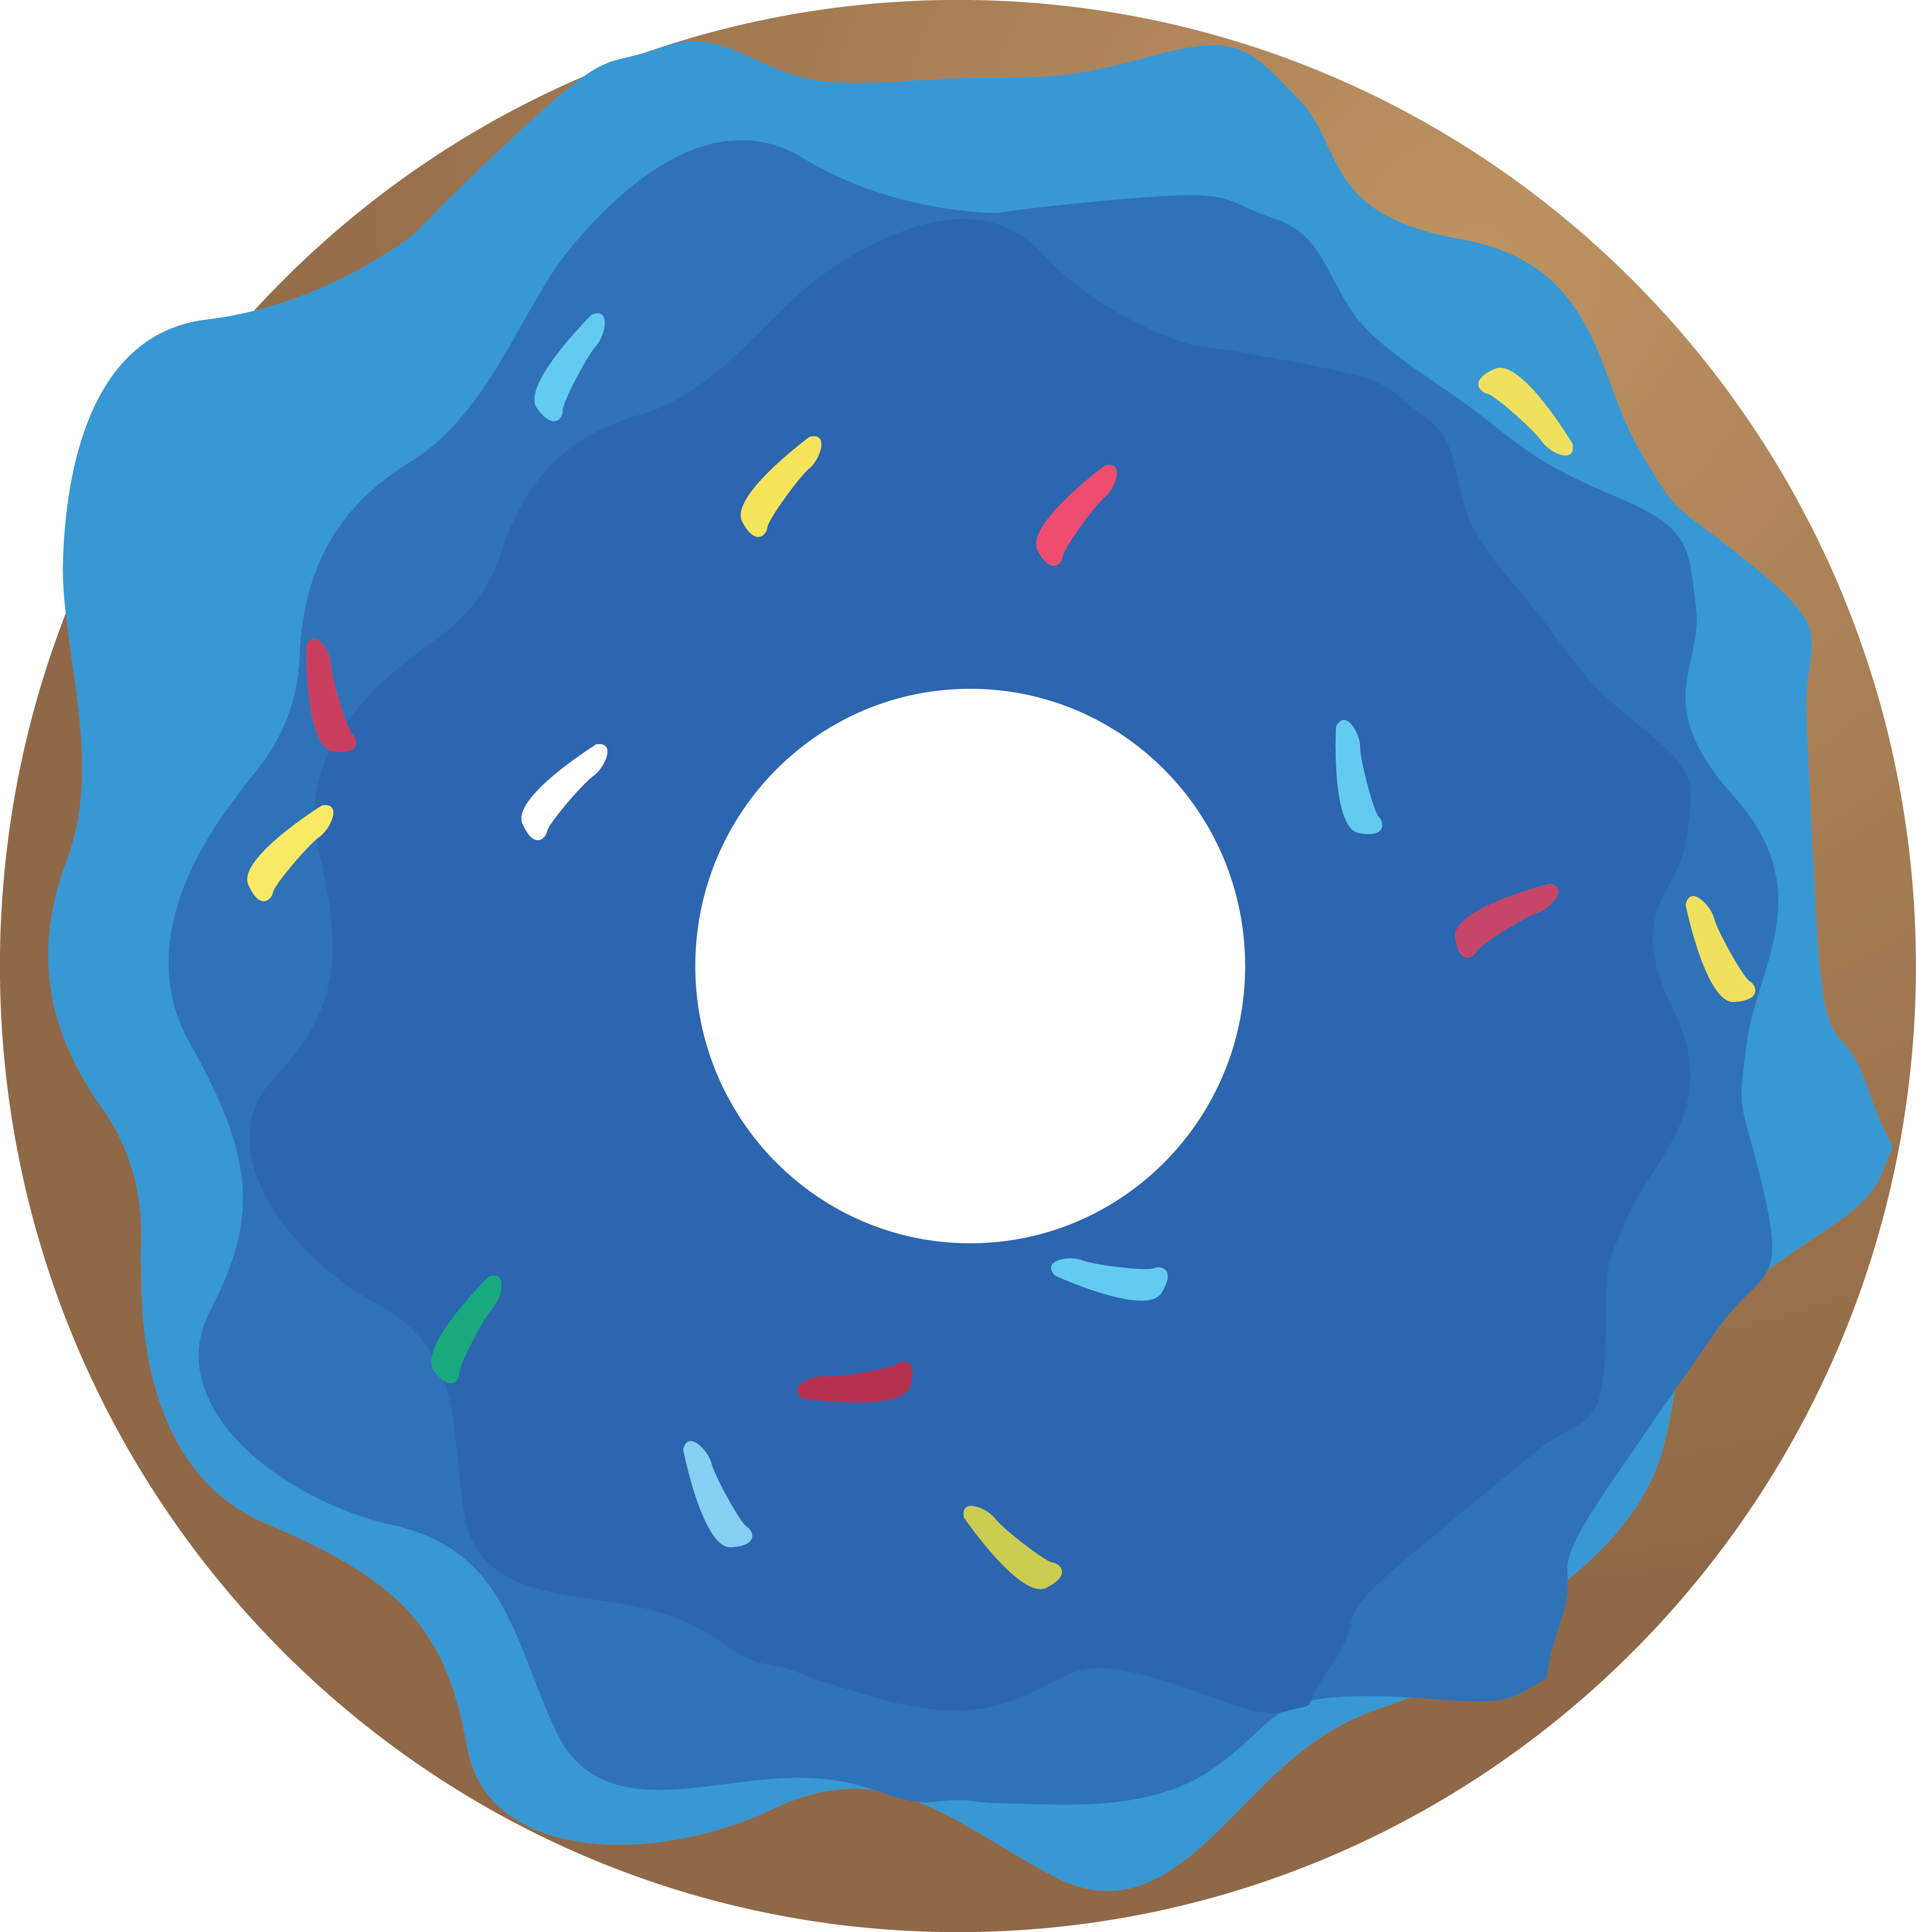 Doughnut clipart blue. Donut png all about